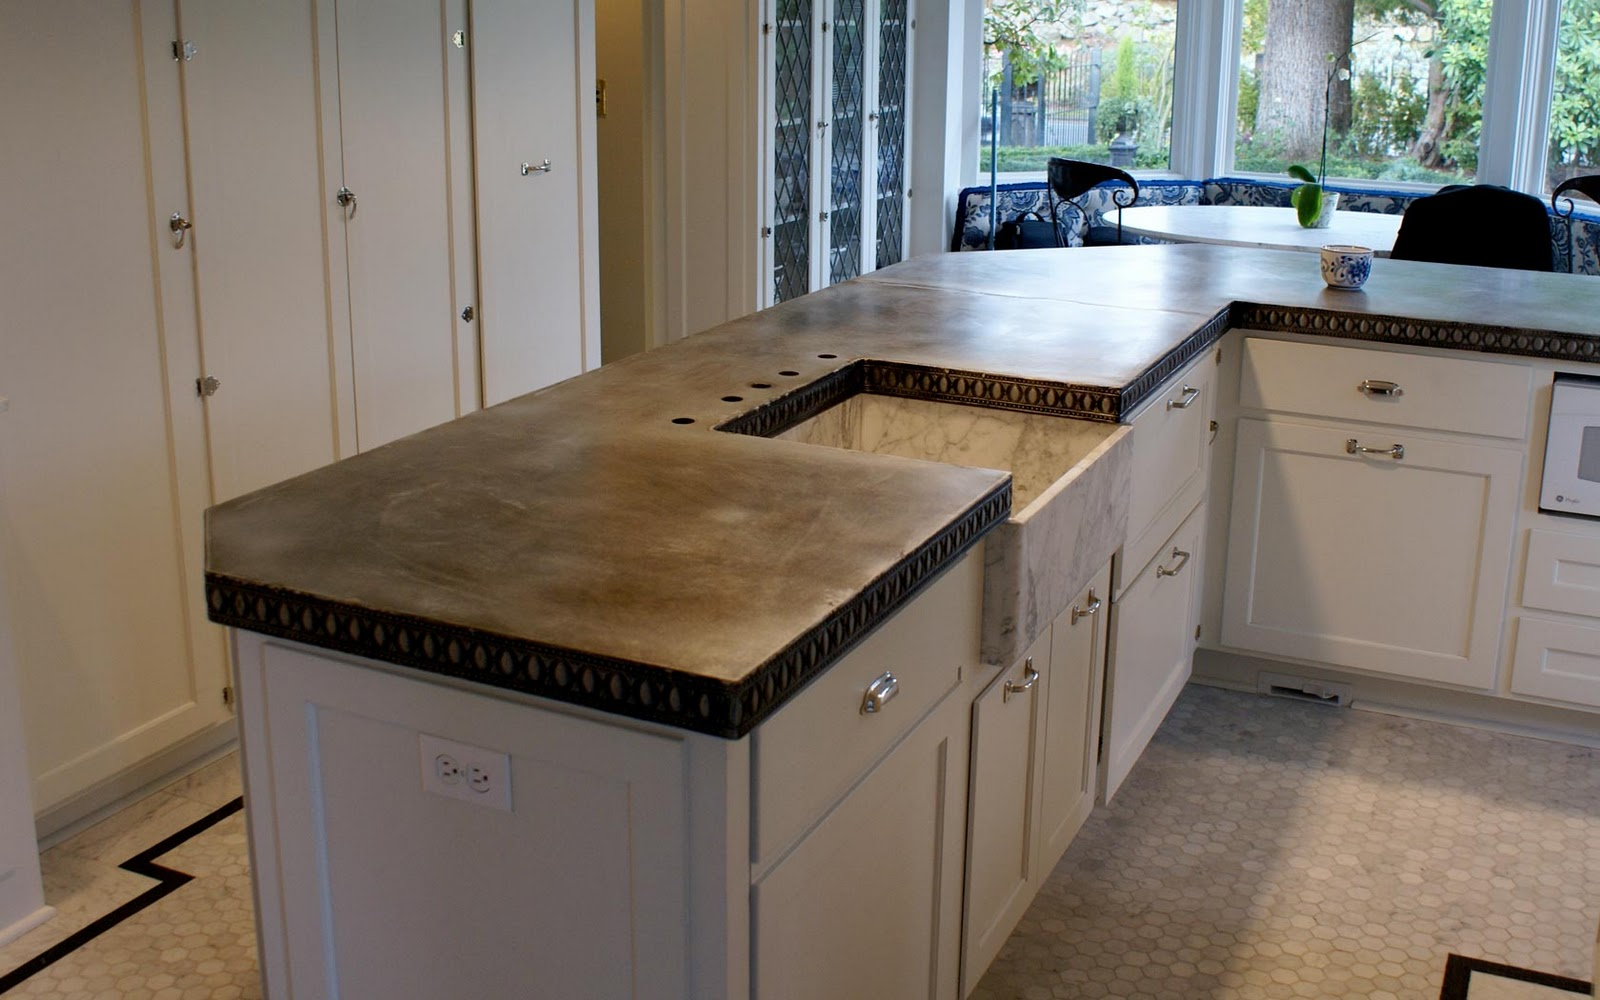 Deluxe Custom Kitchen Zinc That Can Fit In Any Home